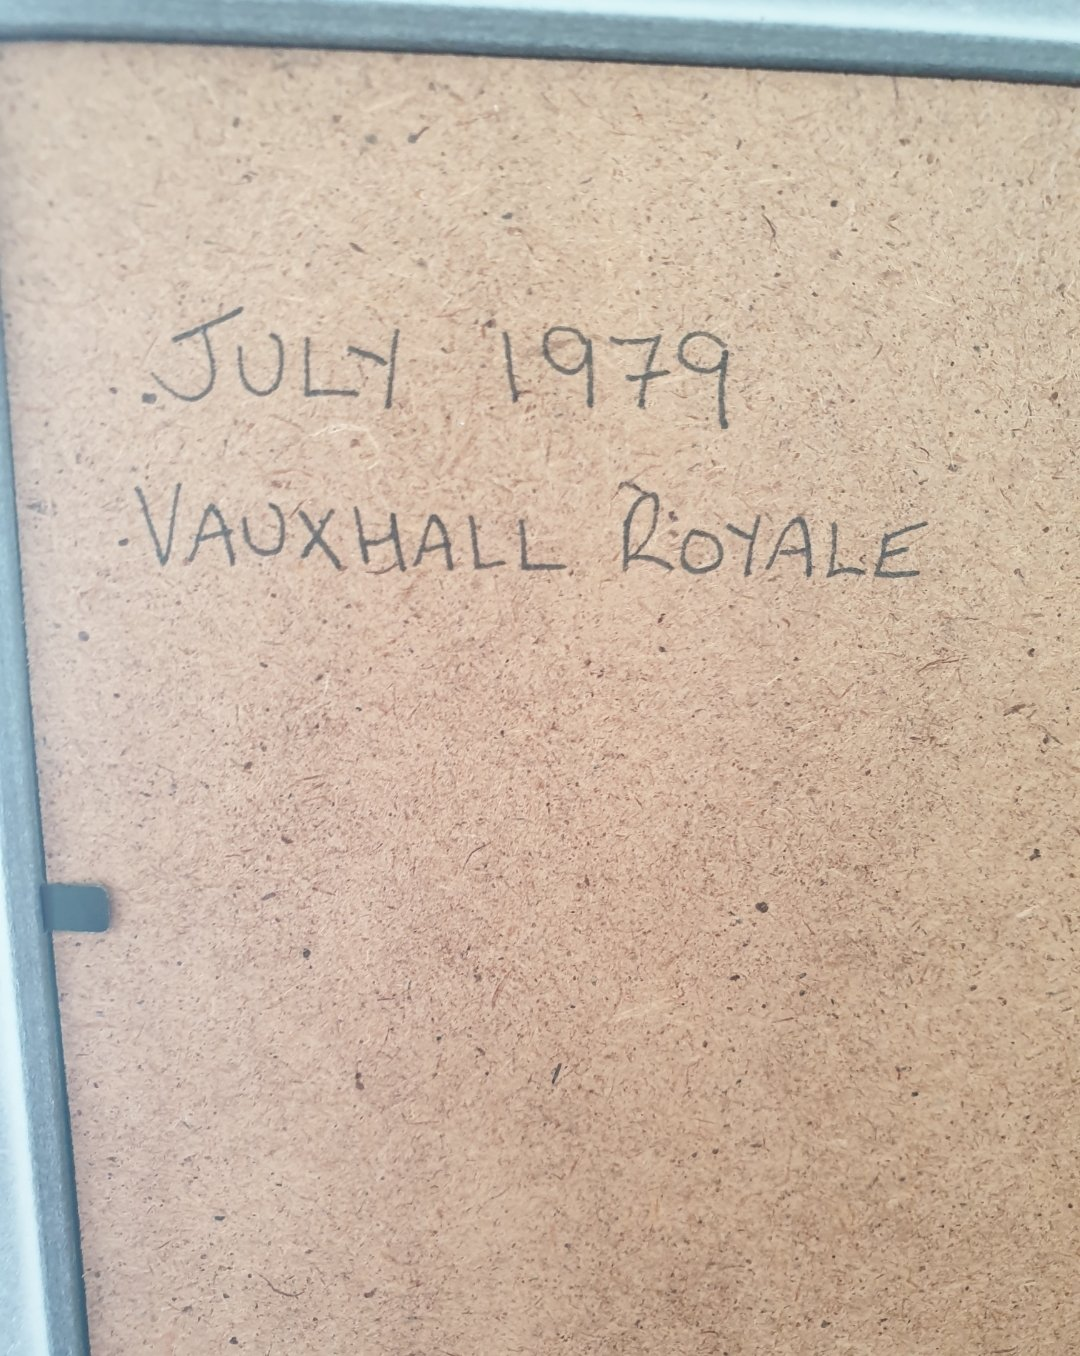 1979 Original Vauxhall Royale Advert For Sale (picture 2 of 2)